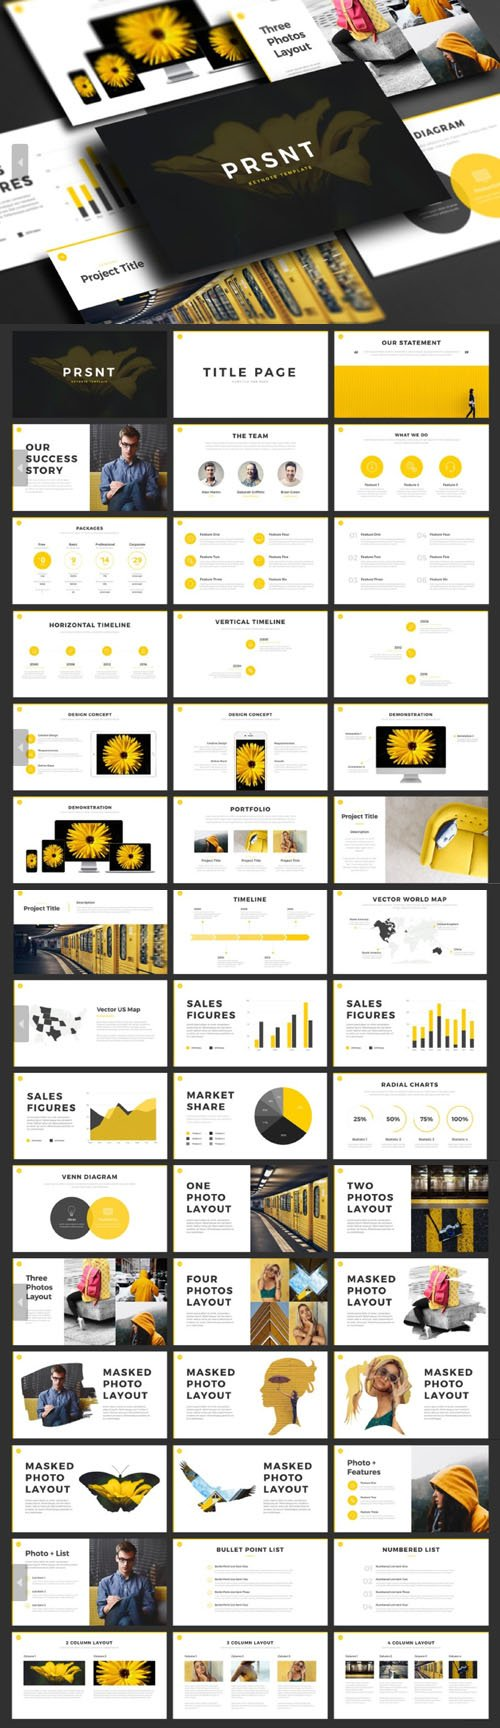 PRSNT PowerPoint & Keynote Templates